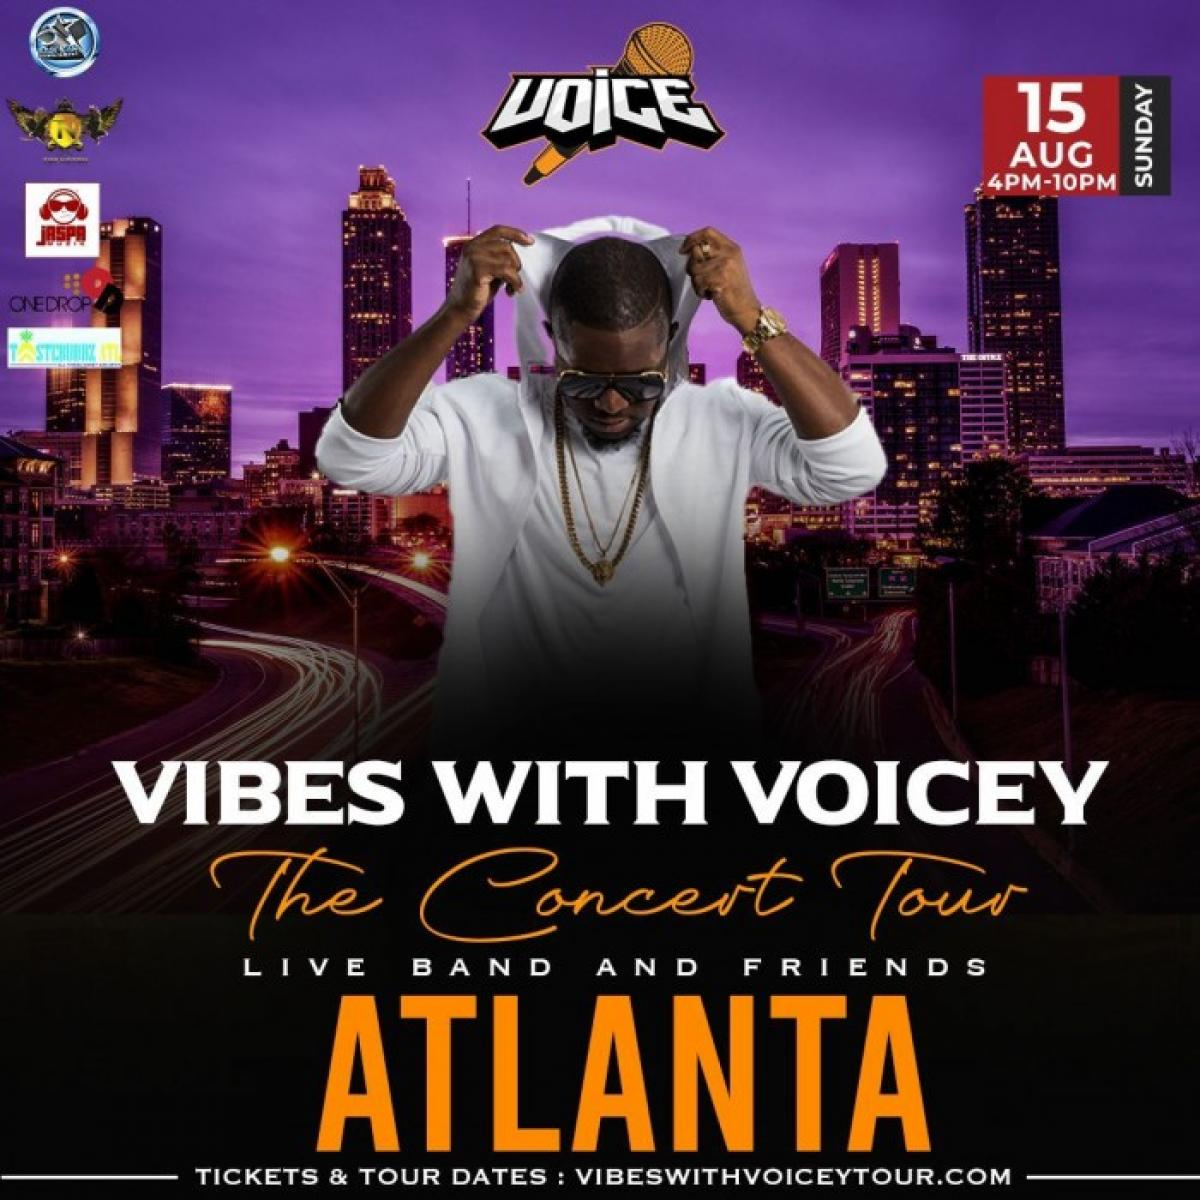 Vibes With Voicey: The Concert Tour Atlanta flyer or graphic.